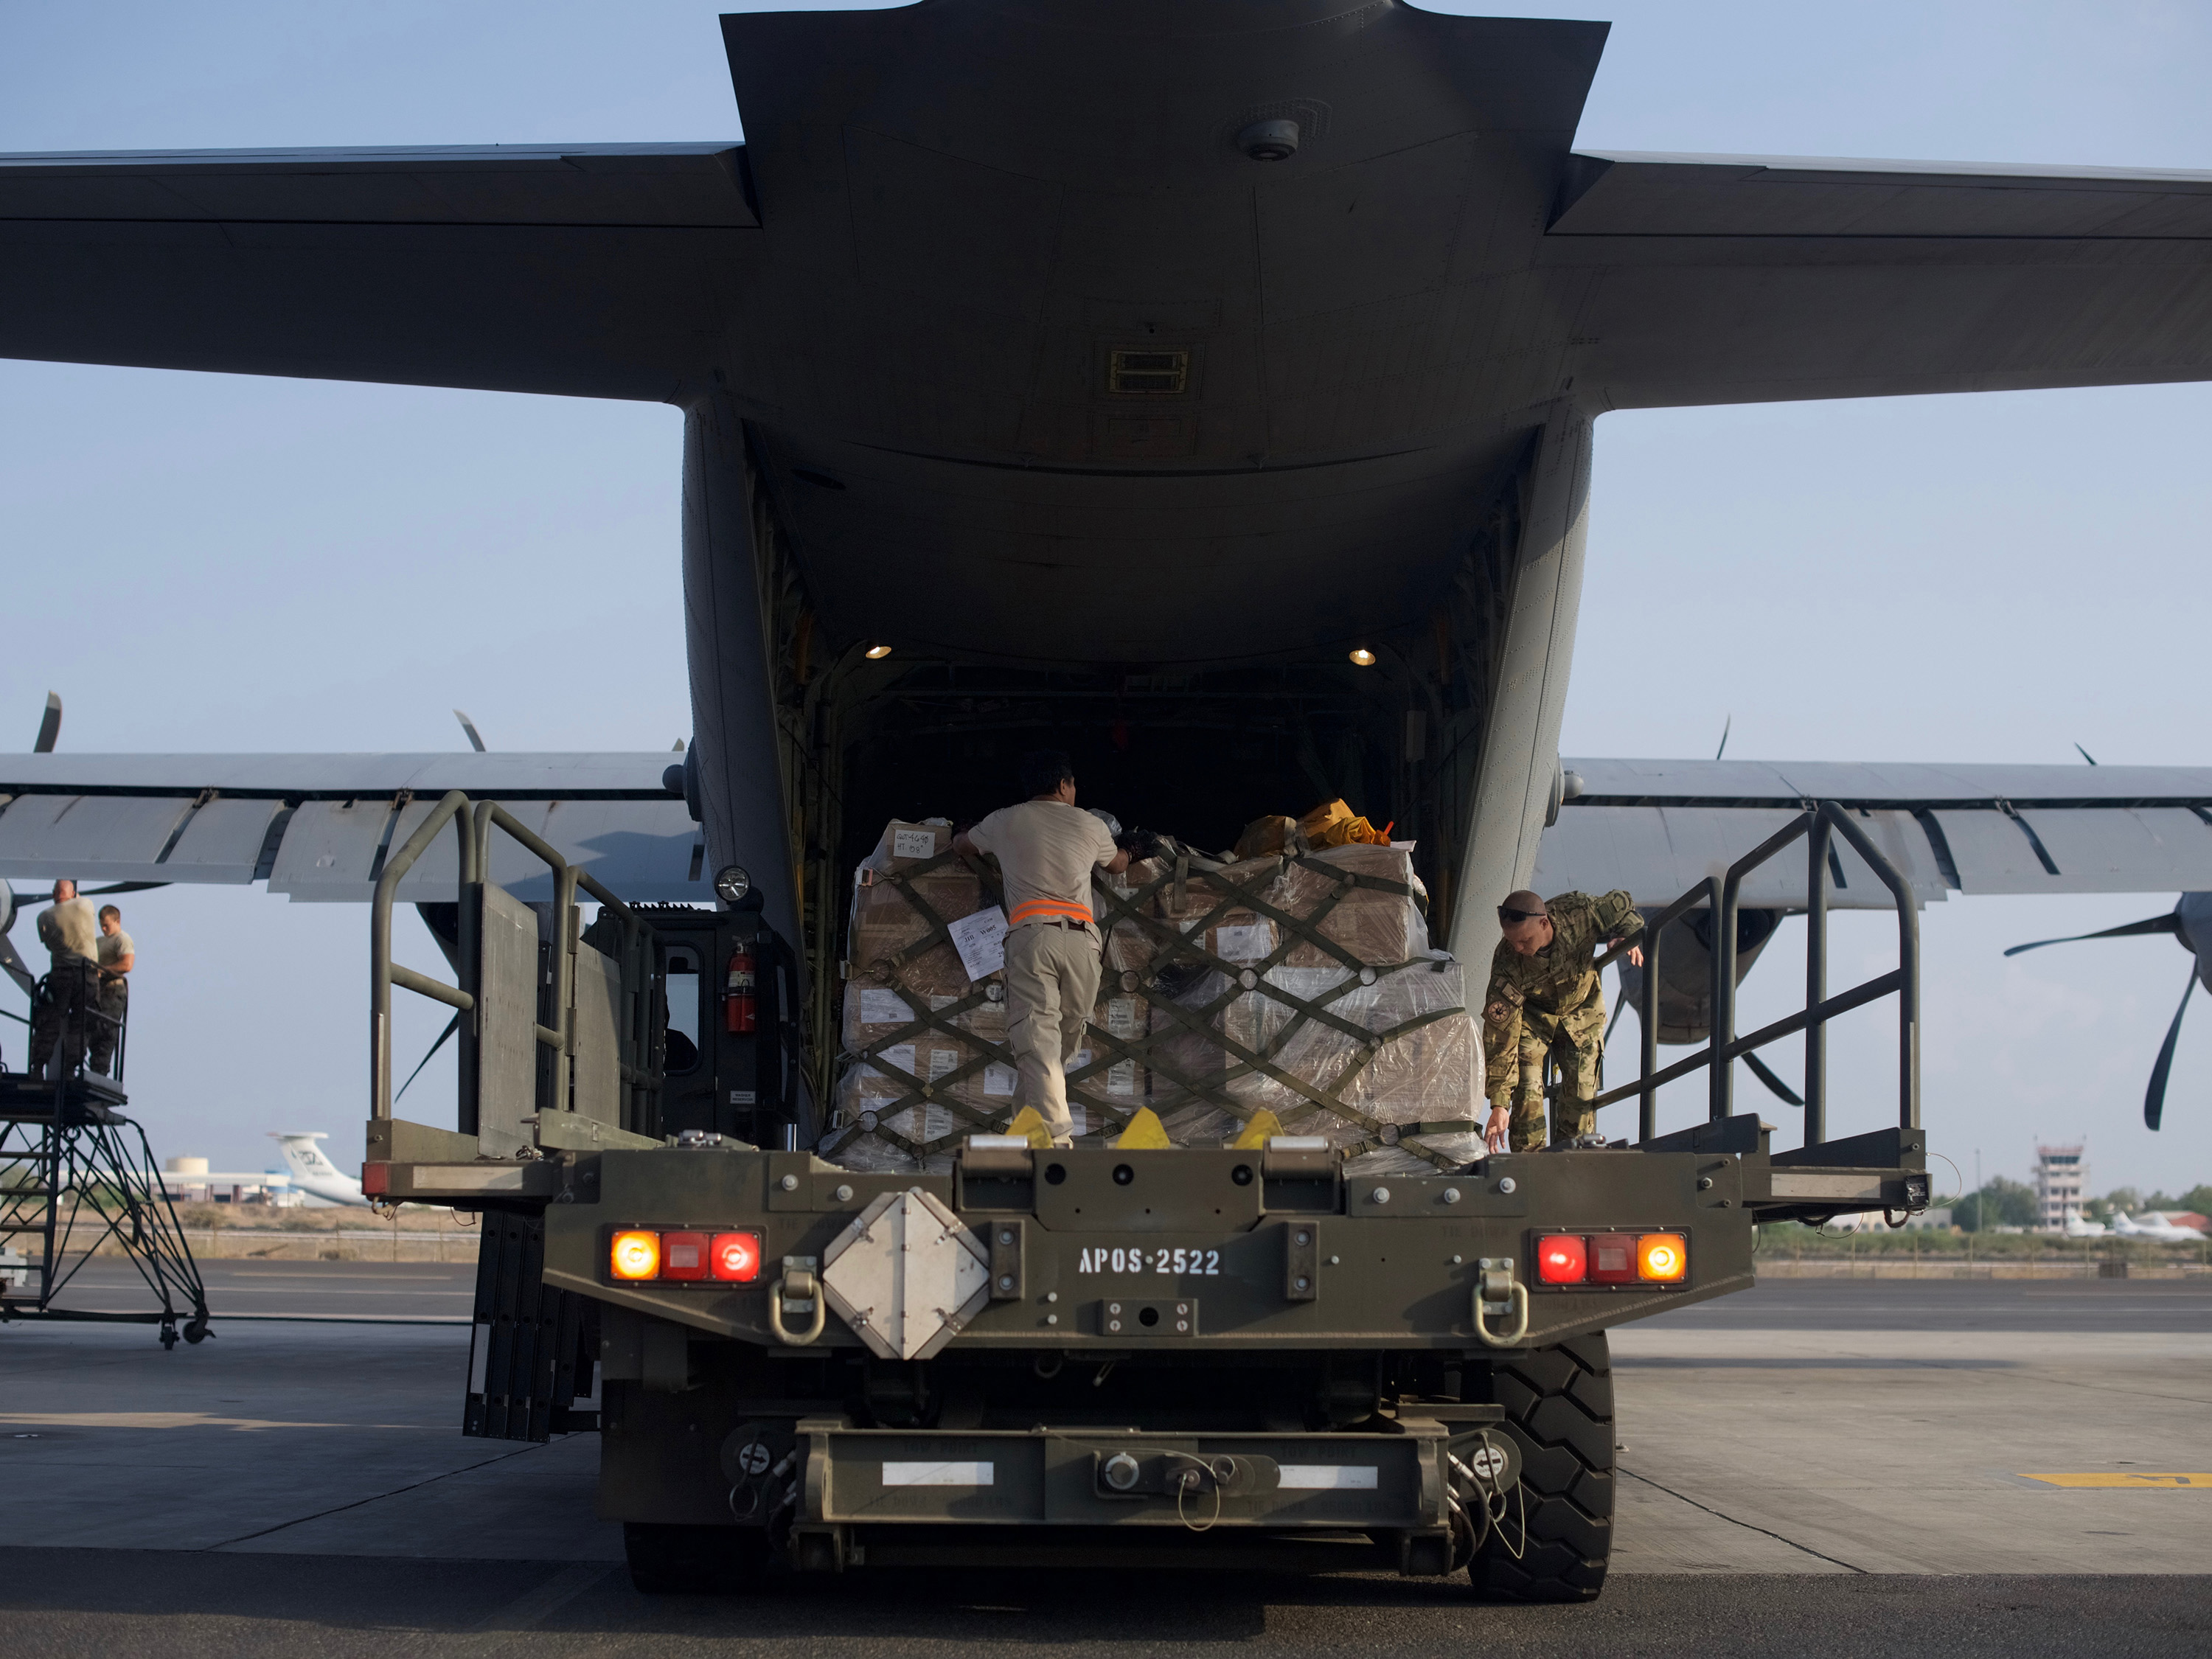 U.S. Airmen from the 449th Air Expeditionary Group load pallets of medical and humanitarian aid supplies onto a U.S. C-130J Super Hercules at Camp Lemonnier, Djibouti, Oct. 17, 2017. The aid is being delivered to the Somali people following a devastating terrorist attack that killed and injured hundreds in Mogadishu on Oct. 14. Working with the Federal Government of Somalia, the U.S. Mission to Somalia immediately arranged for the air shipment. On a Combined Joint Task Force-Horn of Africa mission, the C-130 carried several pallets of medical equipment and supplies. The United States will continue to stand with the Somali government, its people, and international allies to combat terrorism and support efforts to achieve peace, security and prosperity. (U.S. Air Force photo by Staff Sgt. Gustavo Castillo)